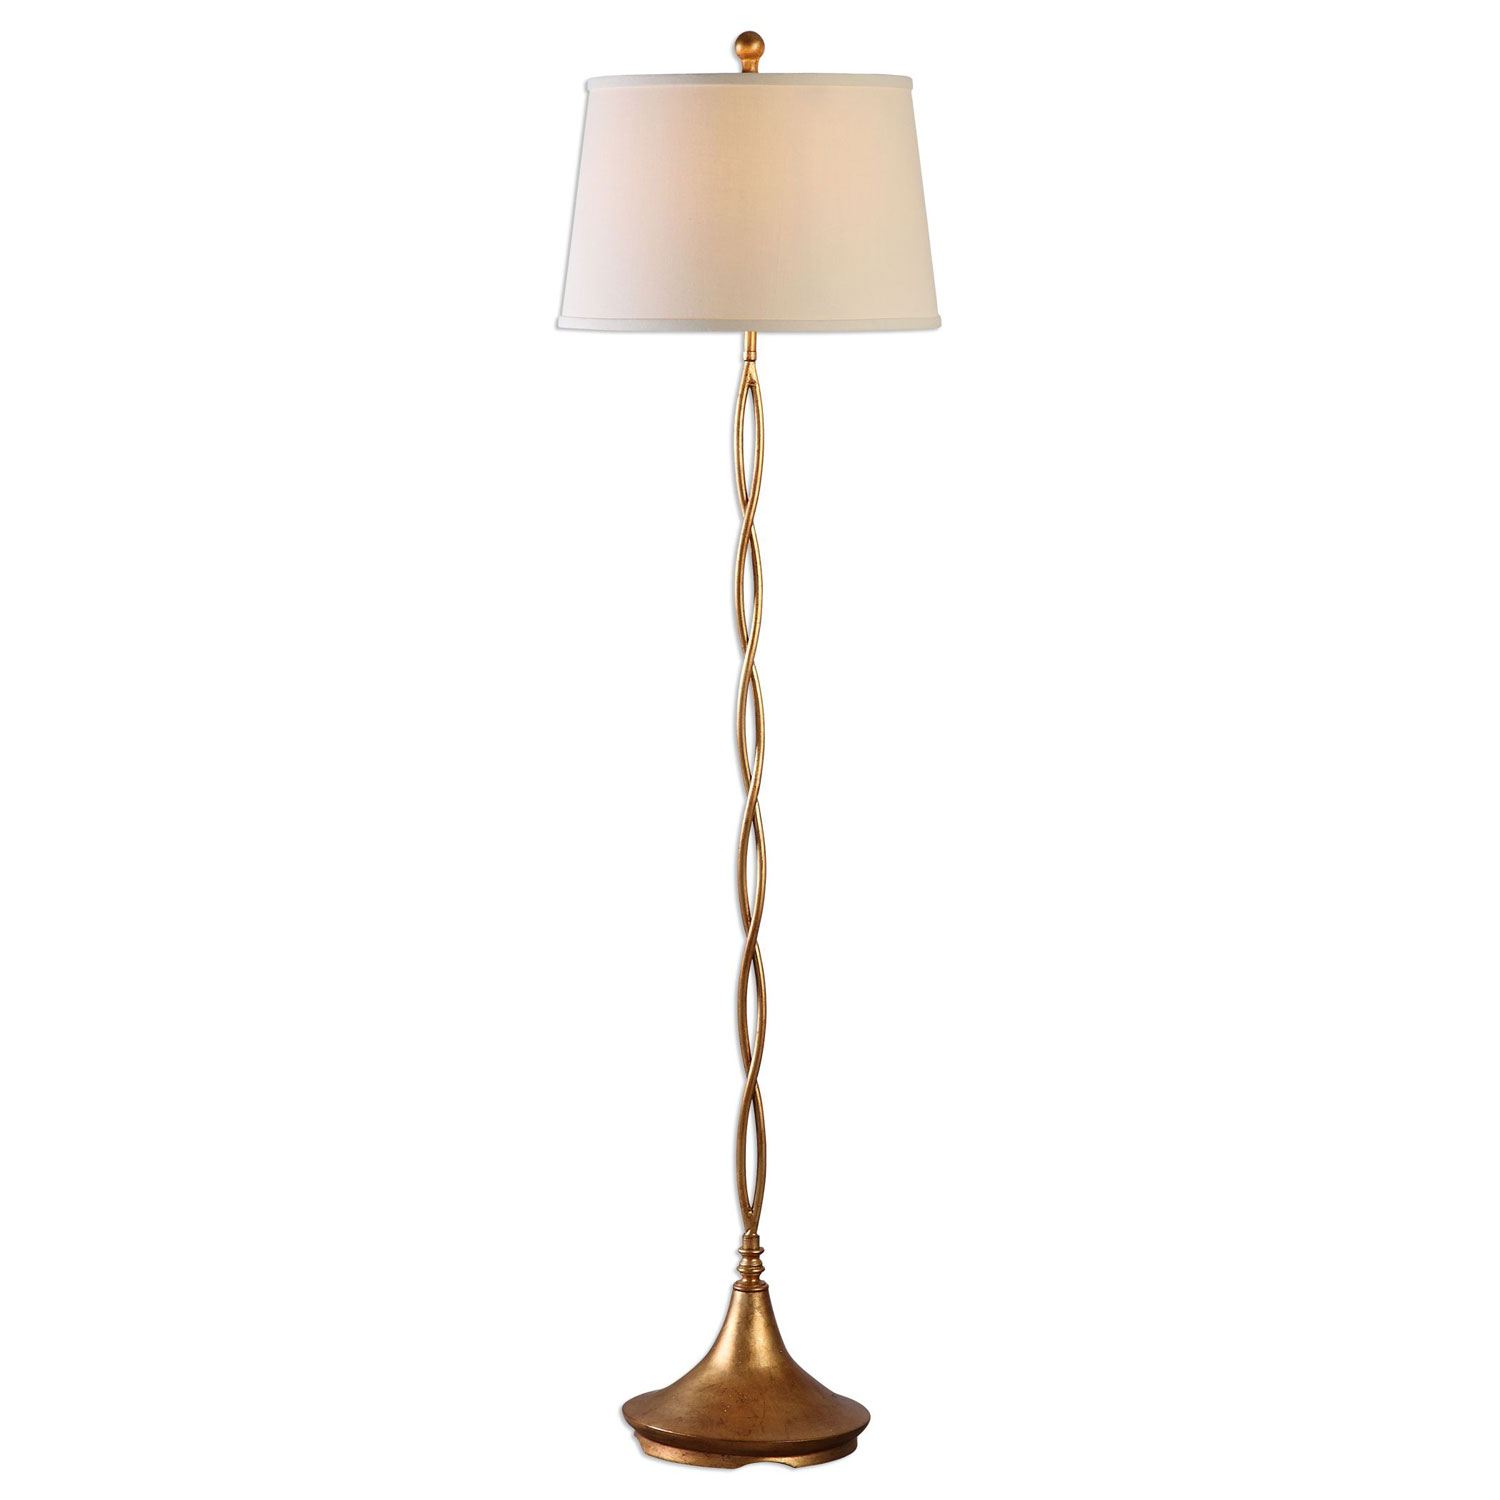 Modern & Contemporary Floor Lamps On SALE.